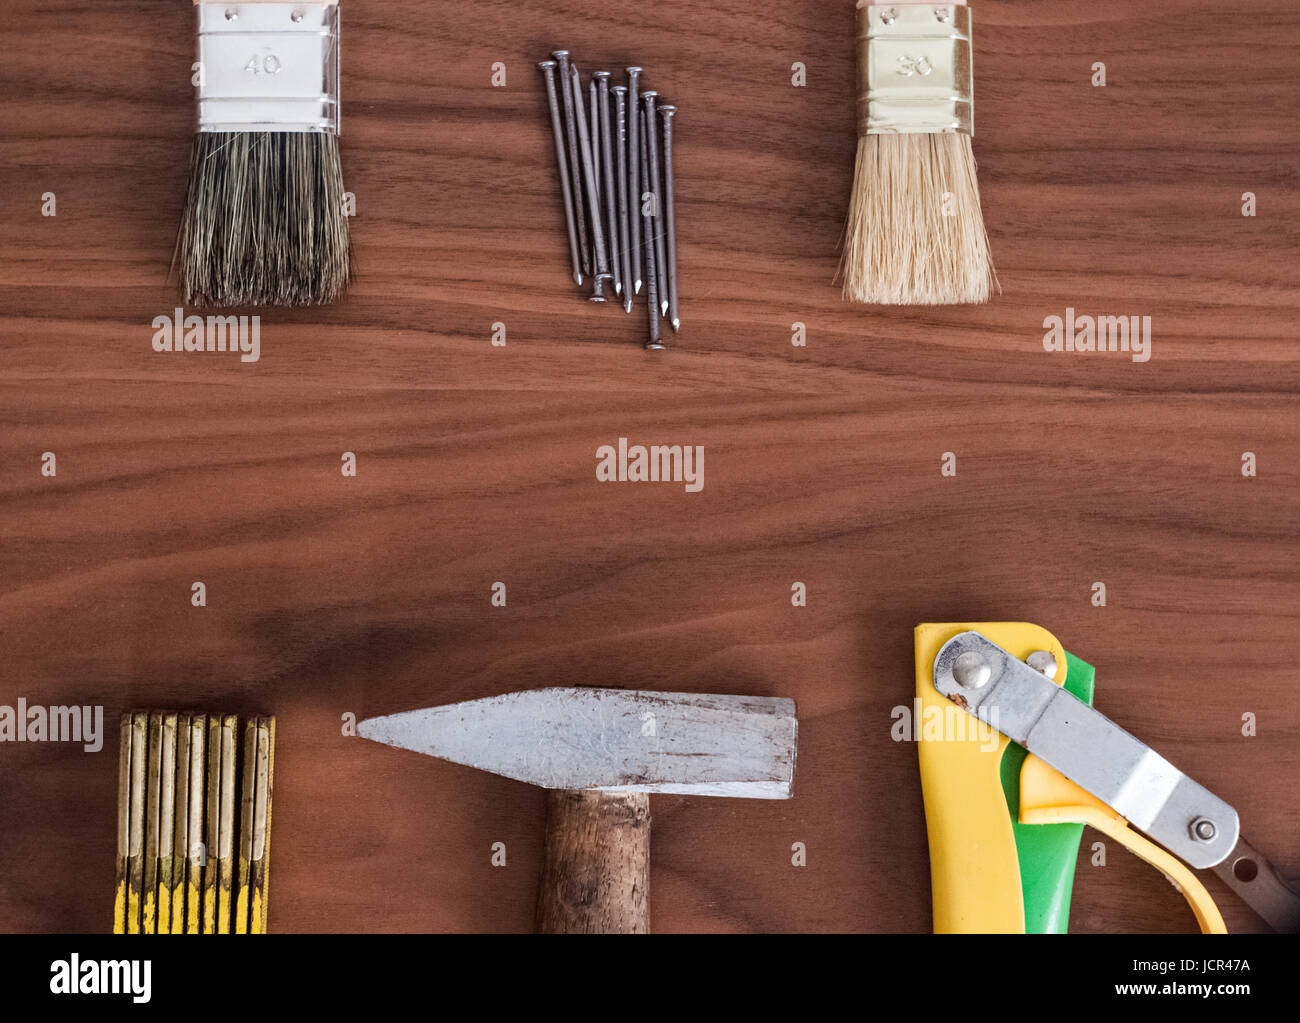 Hammer, nails, brushes, handsaw and meter stick on a wooden table desk - Stock Image